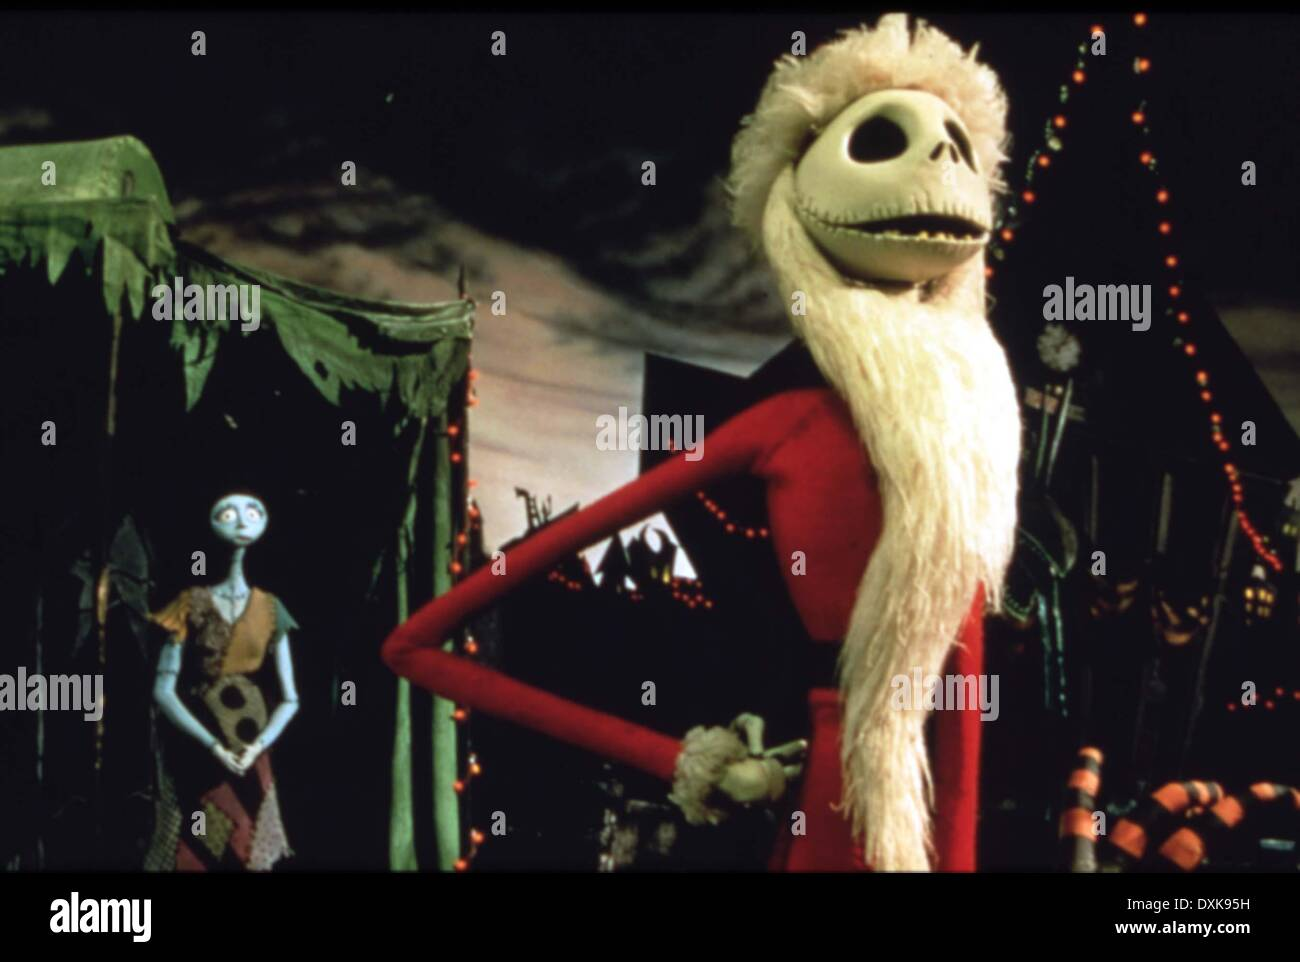 The Nightmare Before Christmas Stock Photos & The Nightmare Before ...